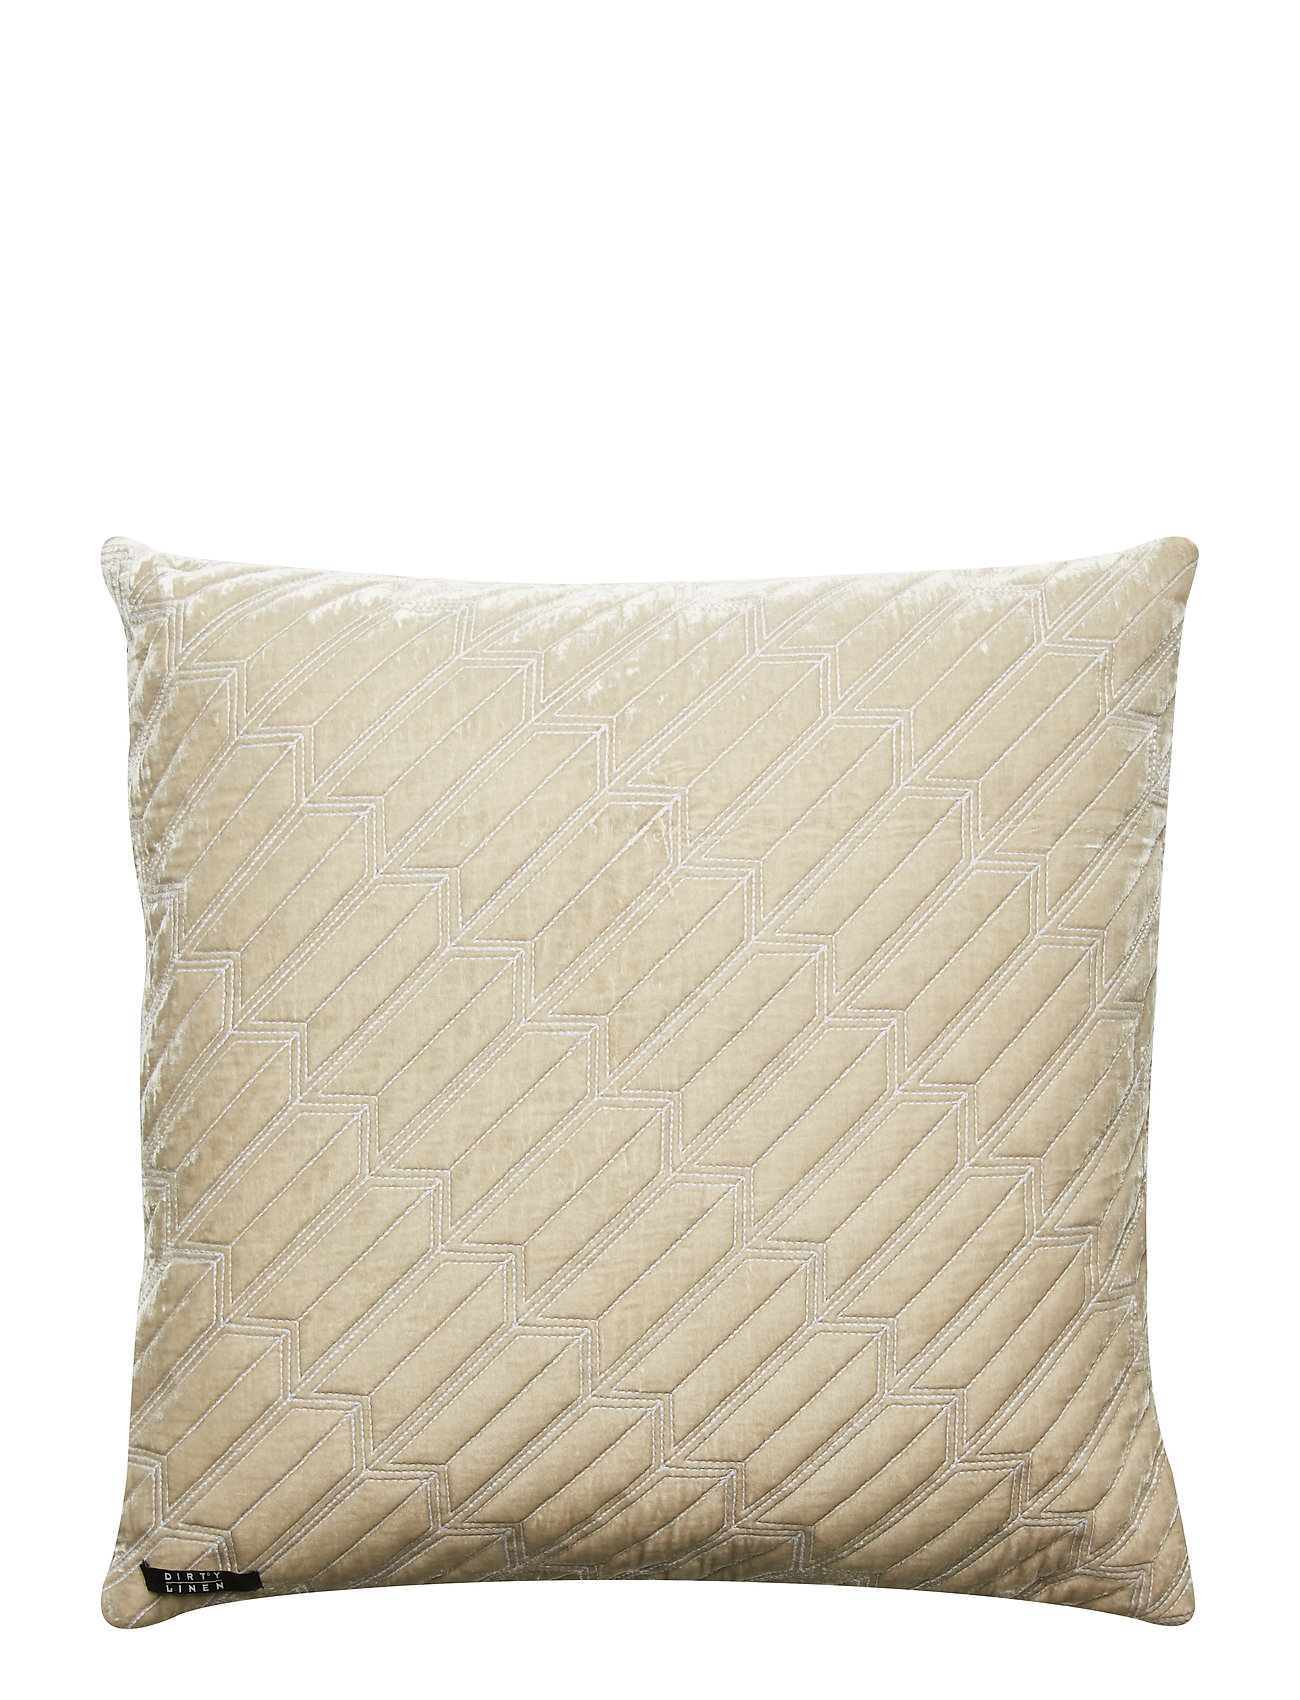 Dirty Linen Arrow Decorative Cushion - MOON